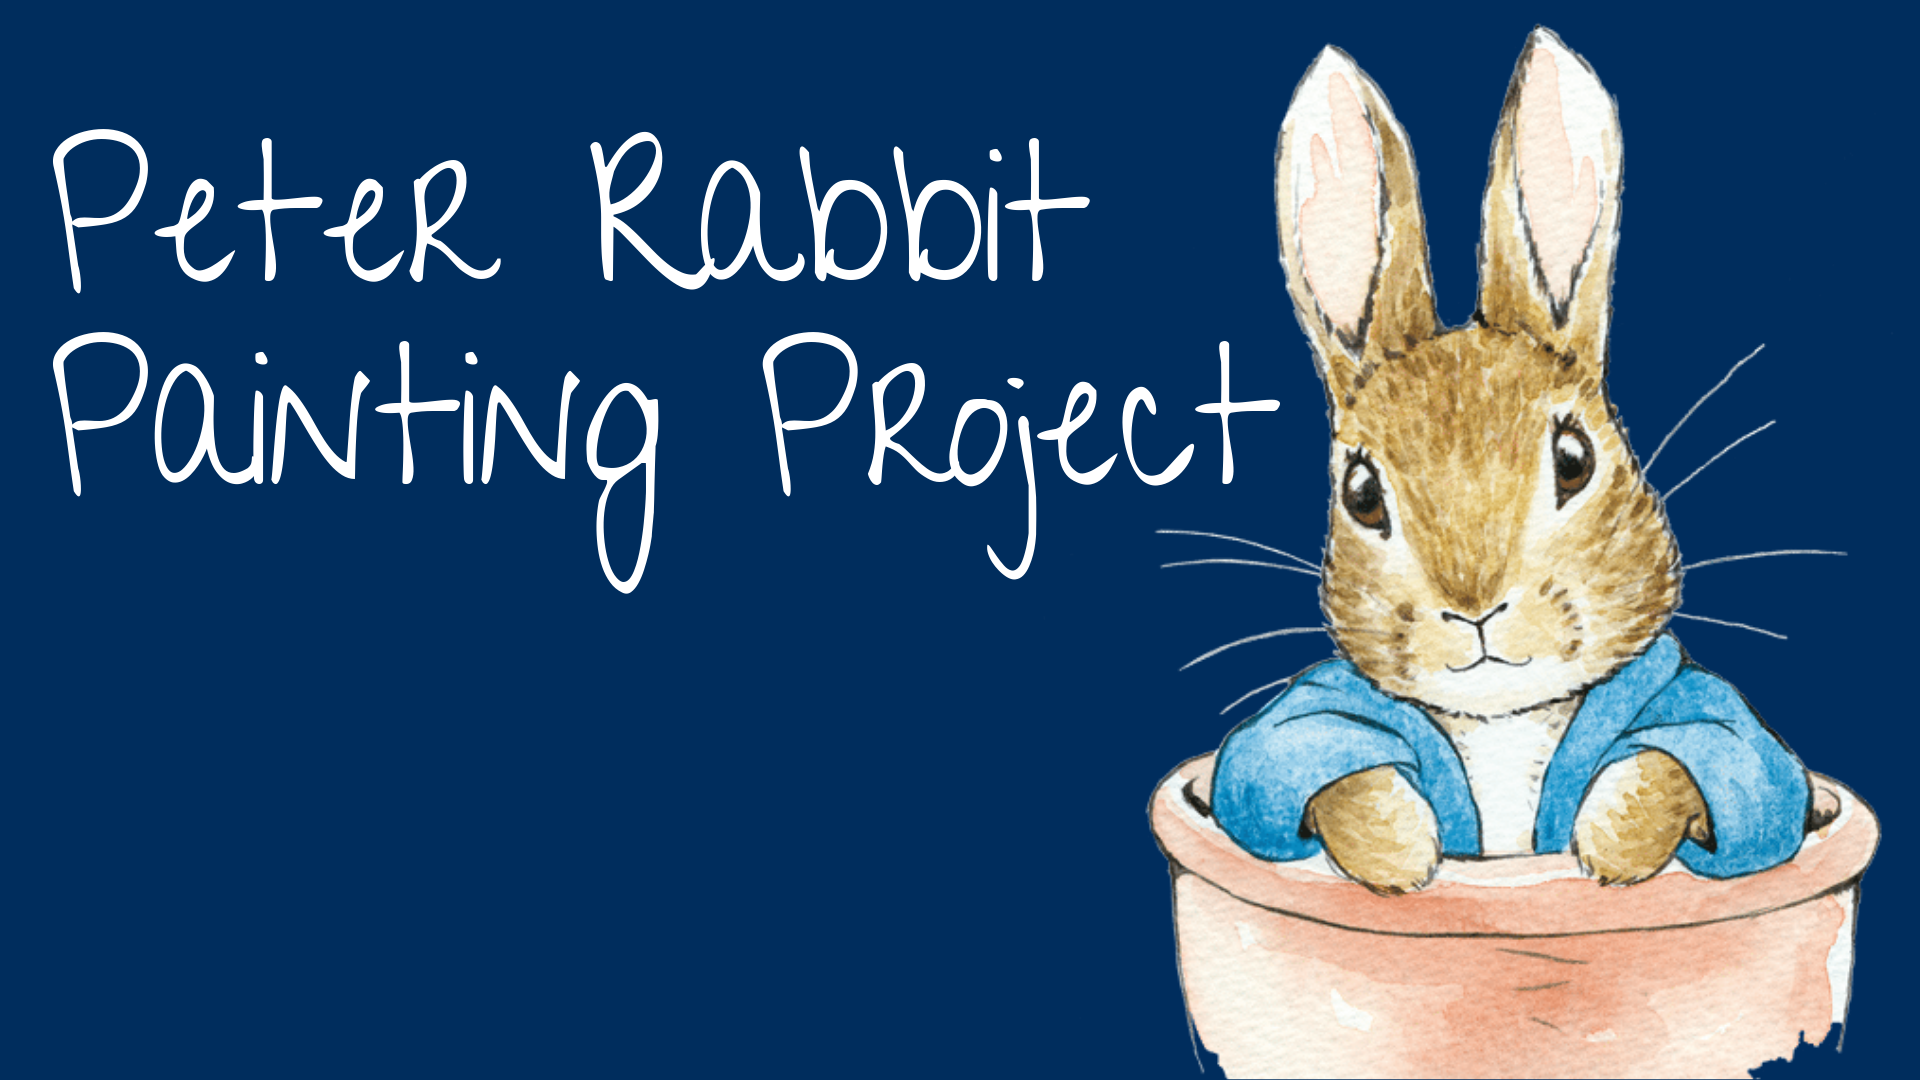 CANCELLED - Peter Rabbit Painting Project